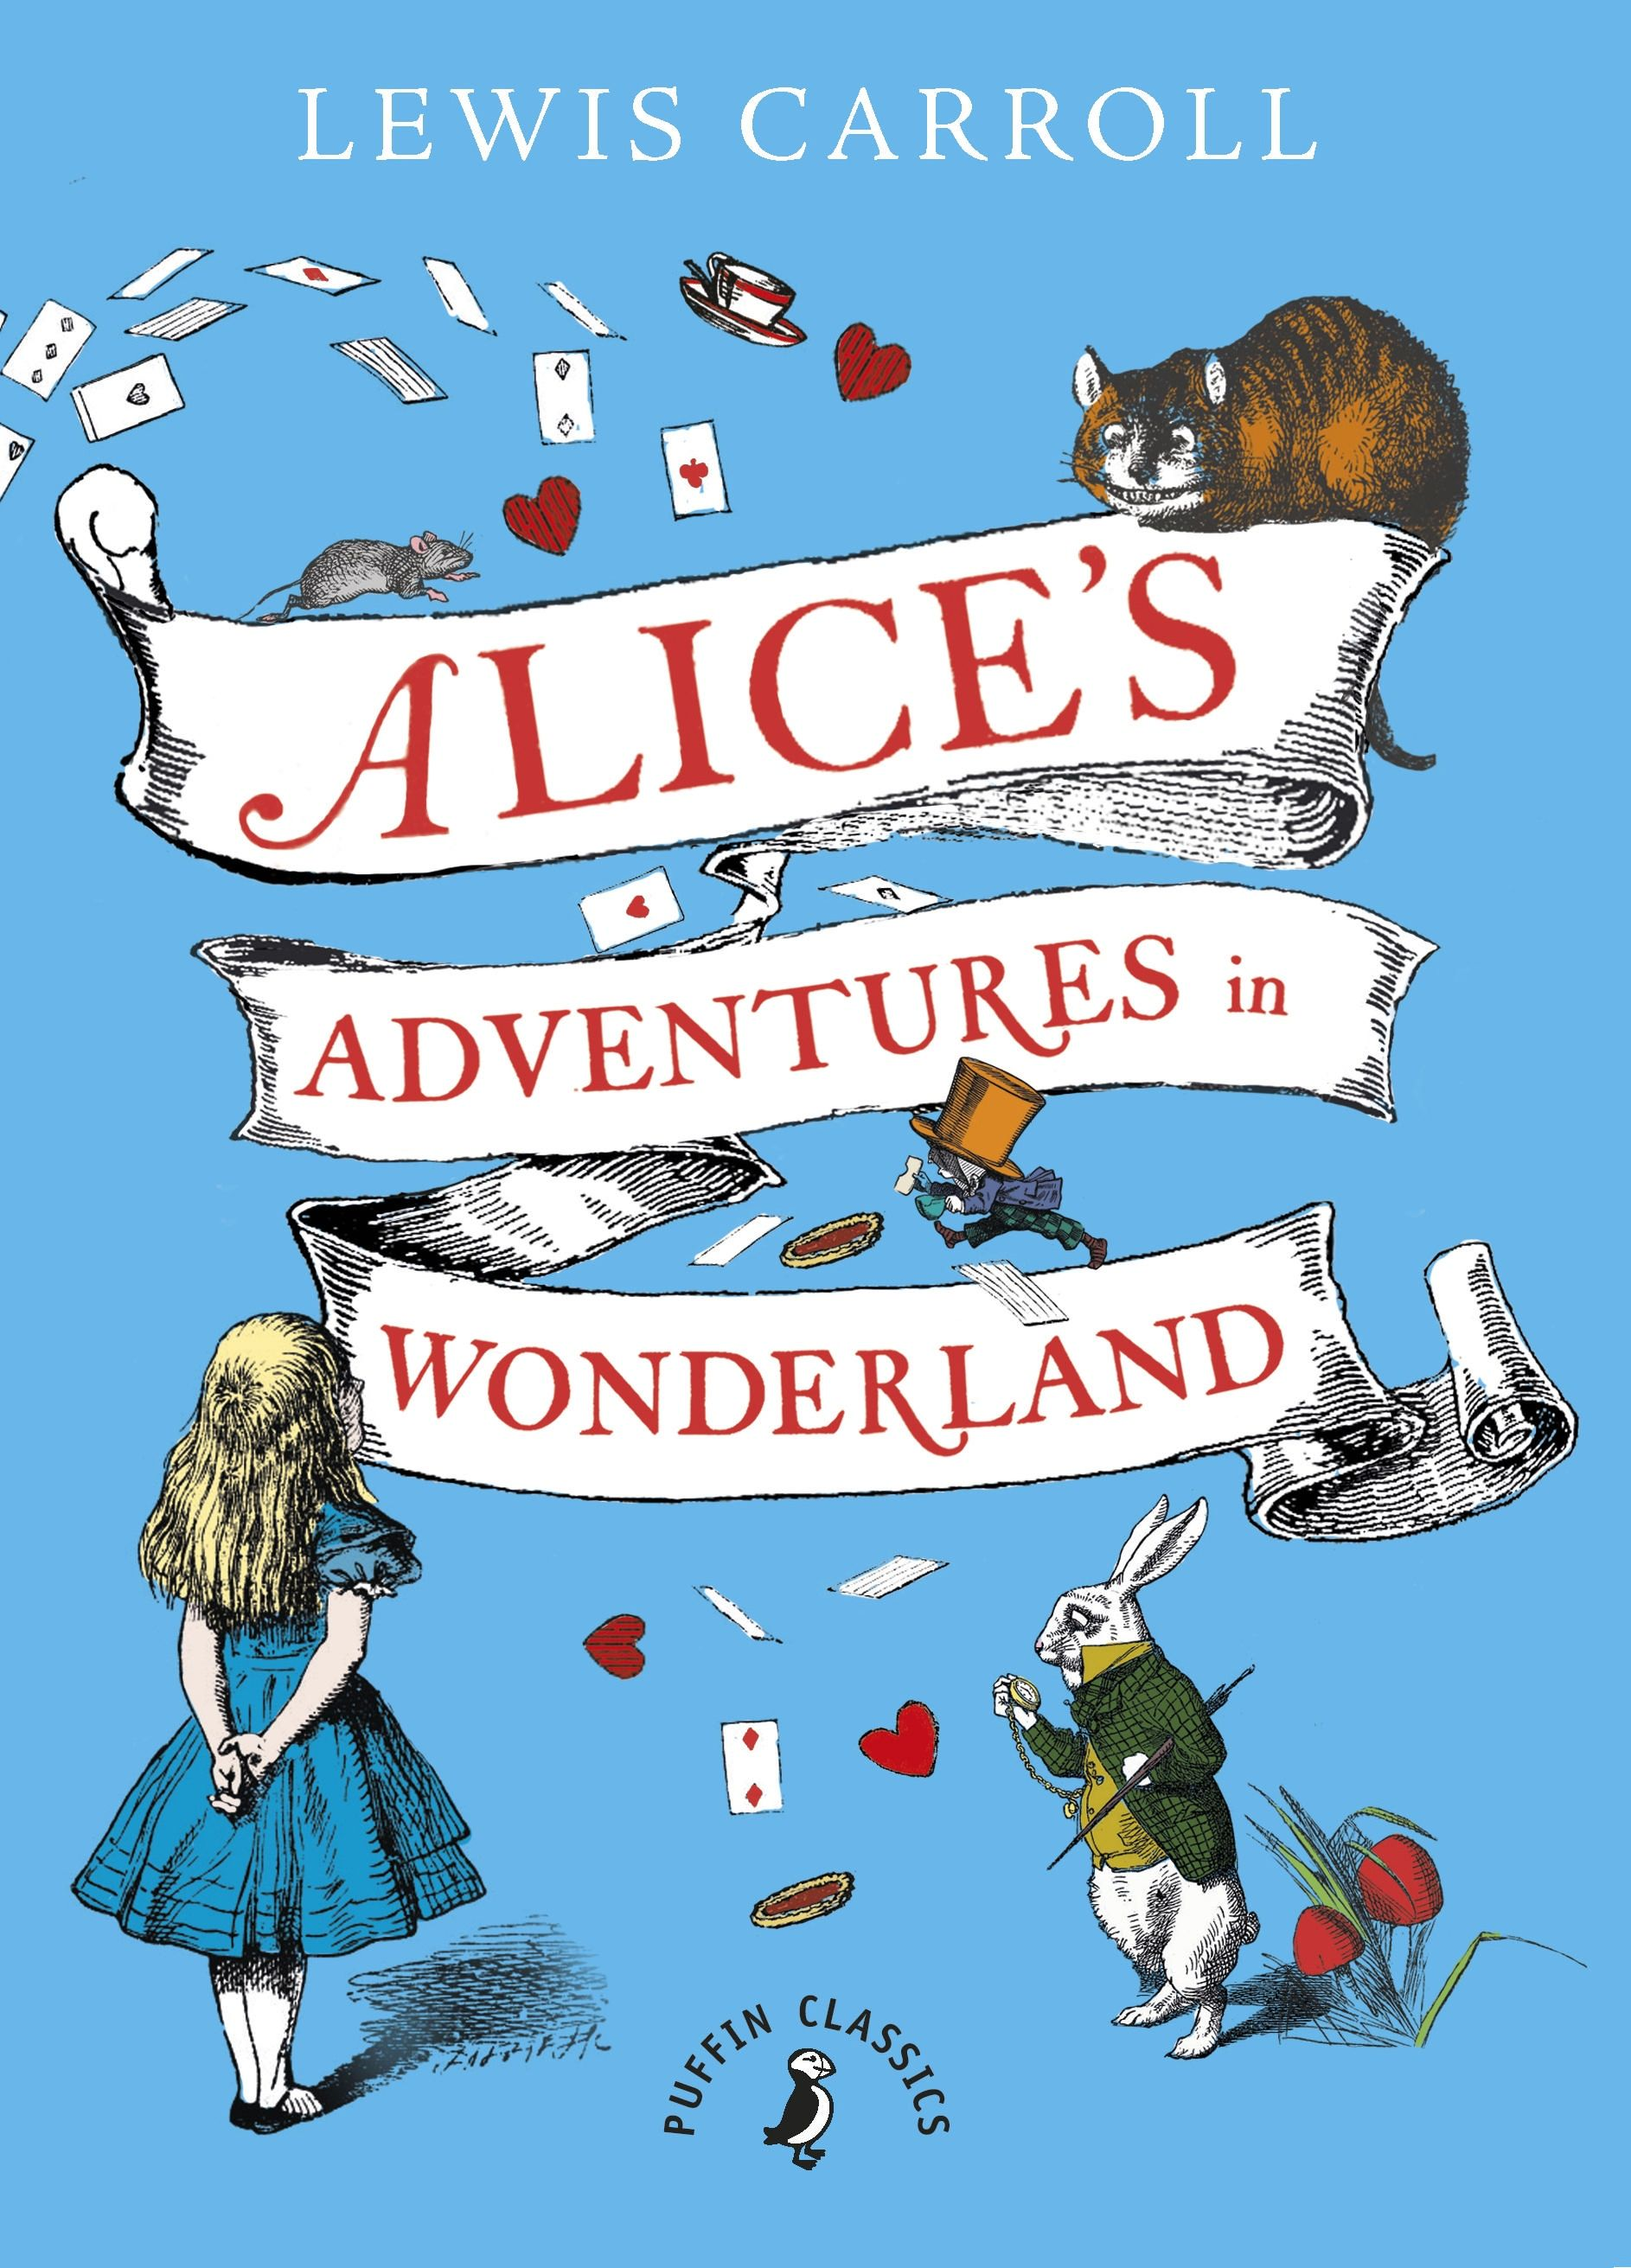 Alice In Wonderland Book Cover Ideas ~ Best childrens books to read as an adult life lessons from kids